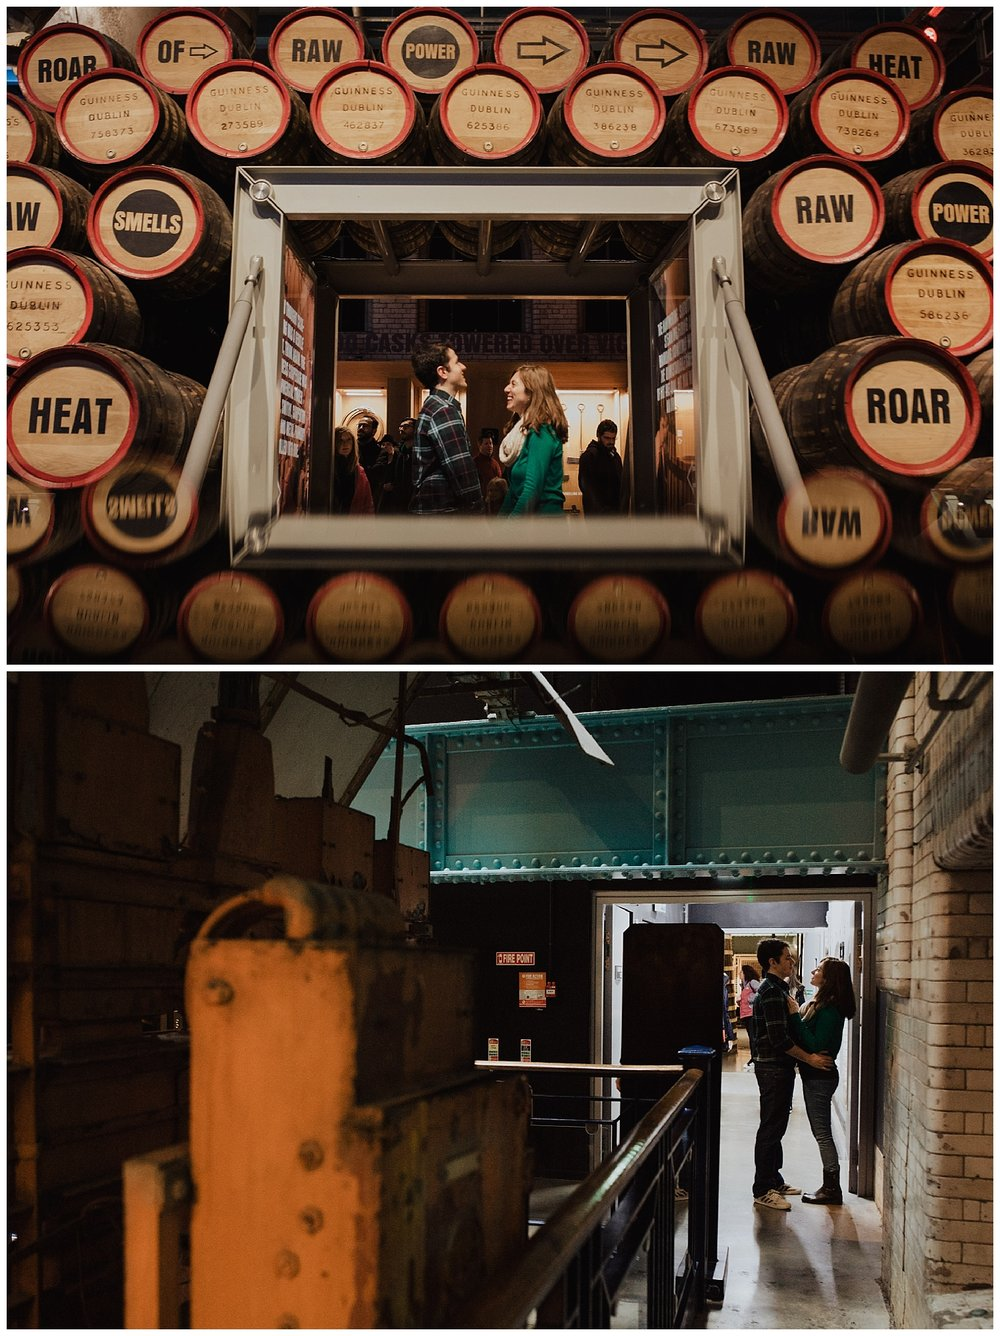 engagement_photos_guiness_storehouse_dublin_ireland_livia_figueiredo_03.jpg